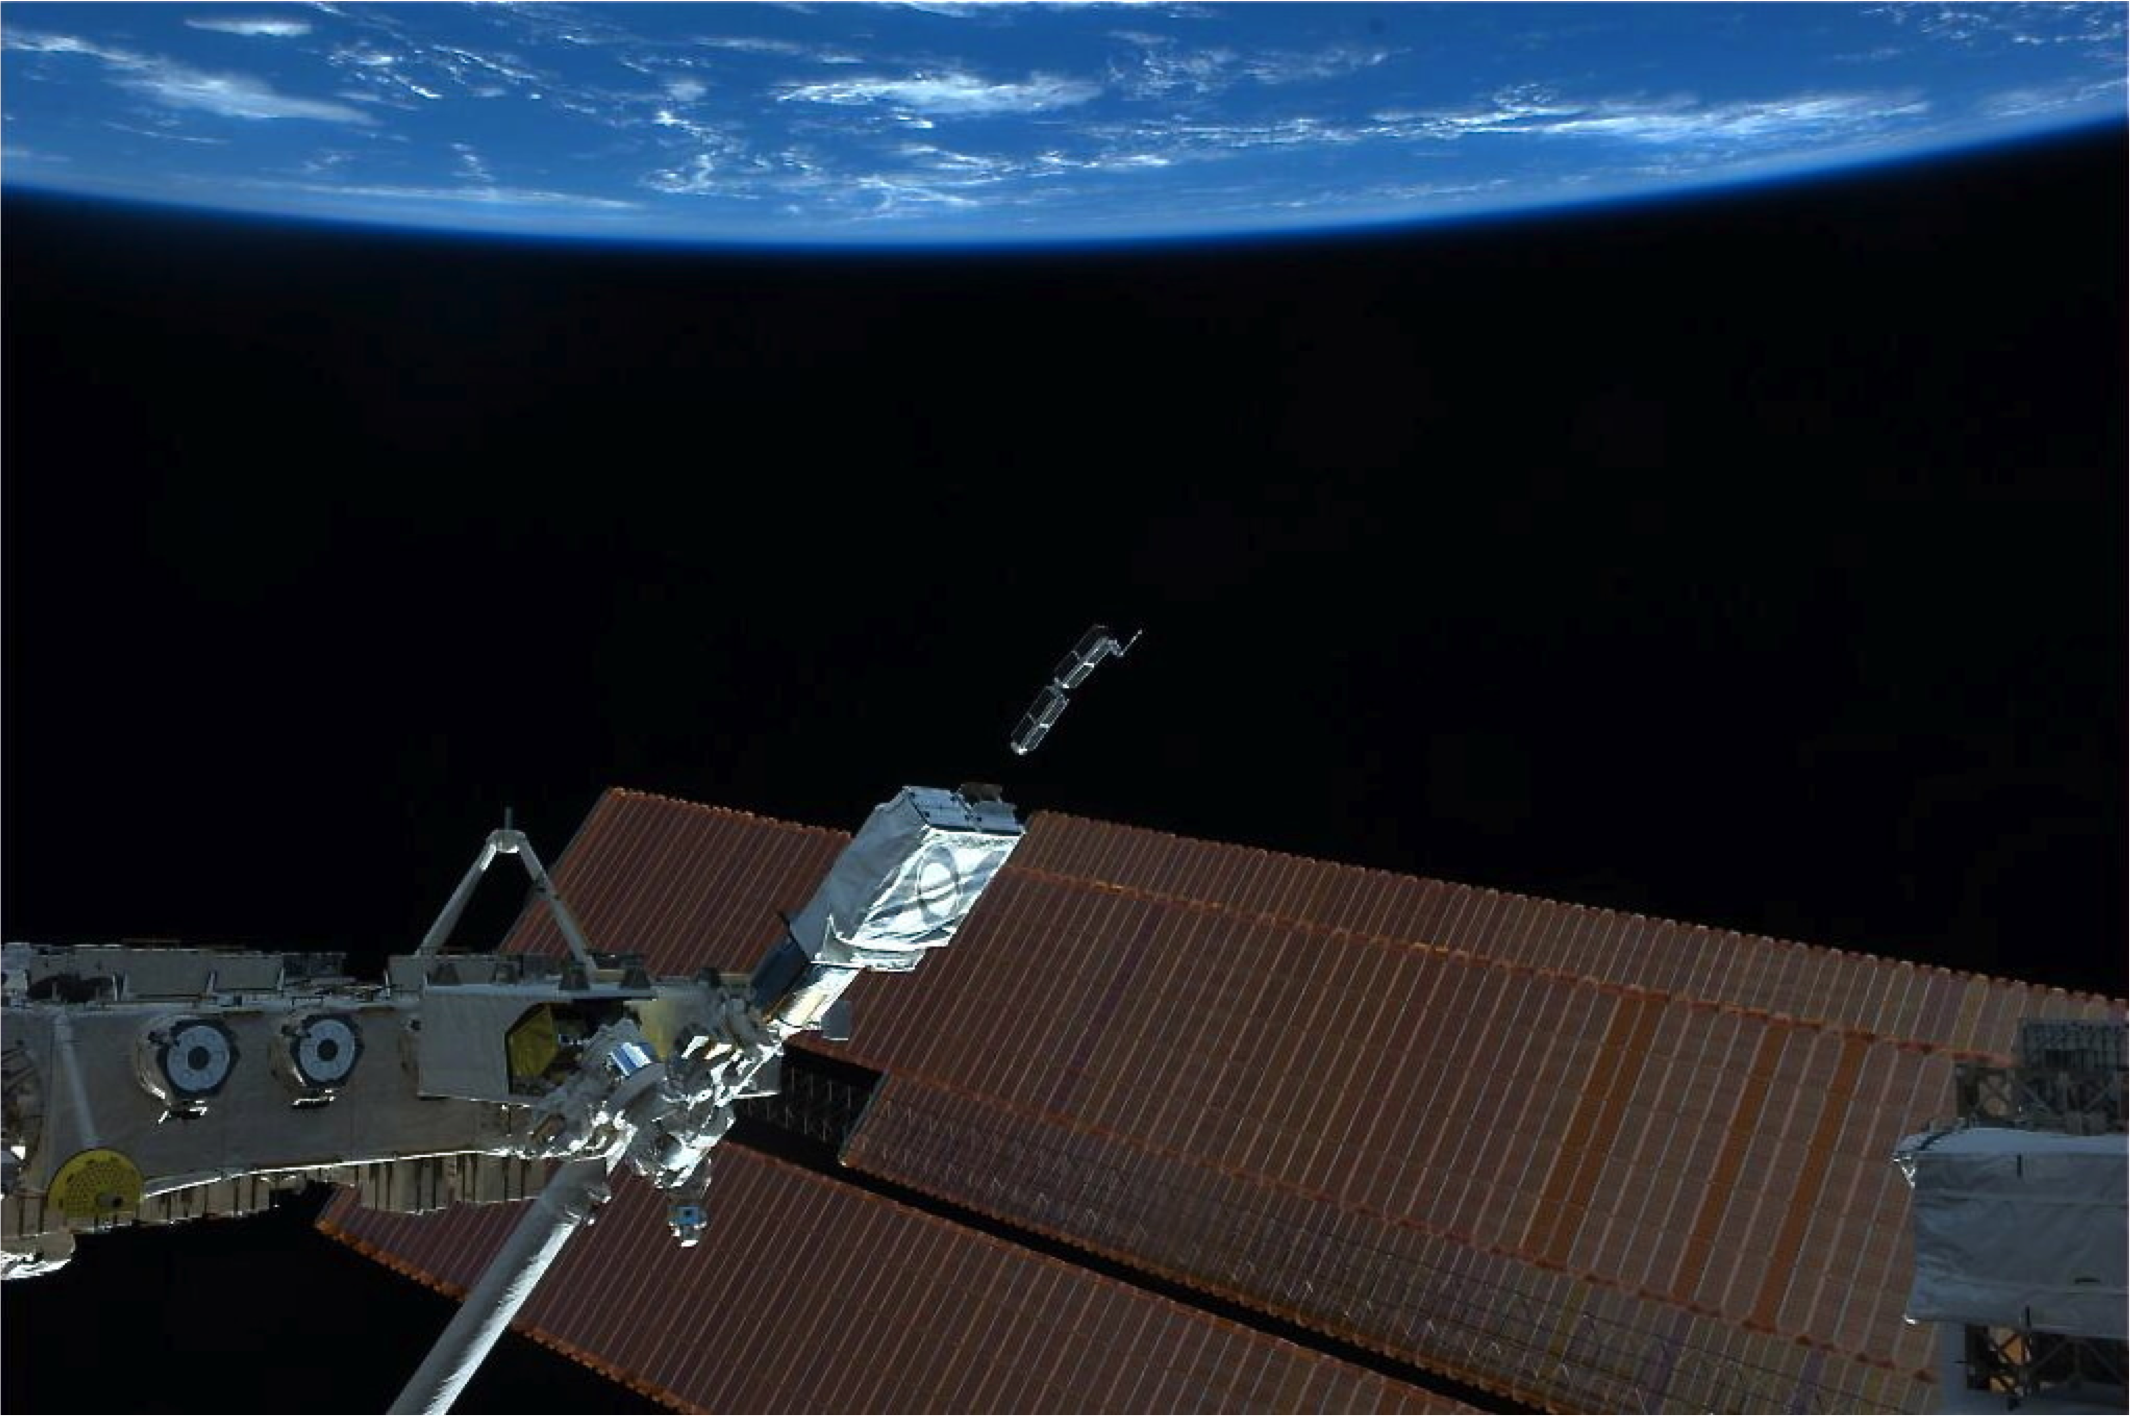 Two Planet Labs Dove satellites being deployed from the ISS in February 2014.